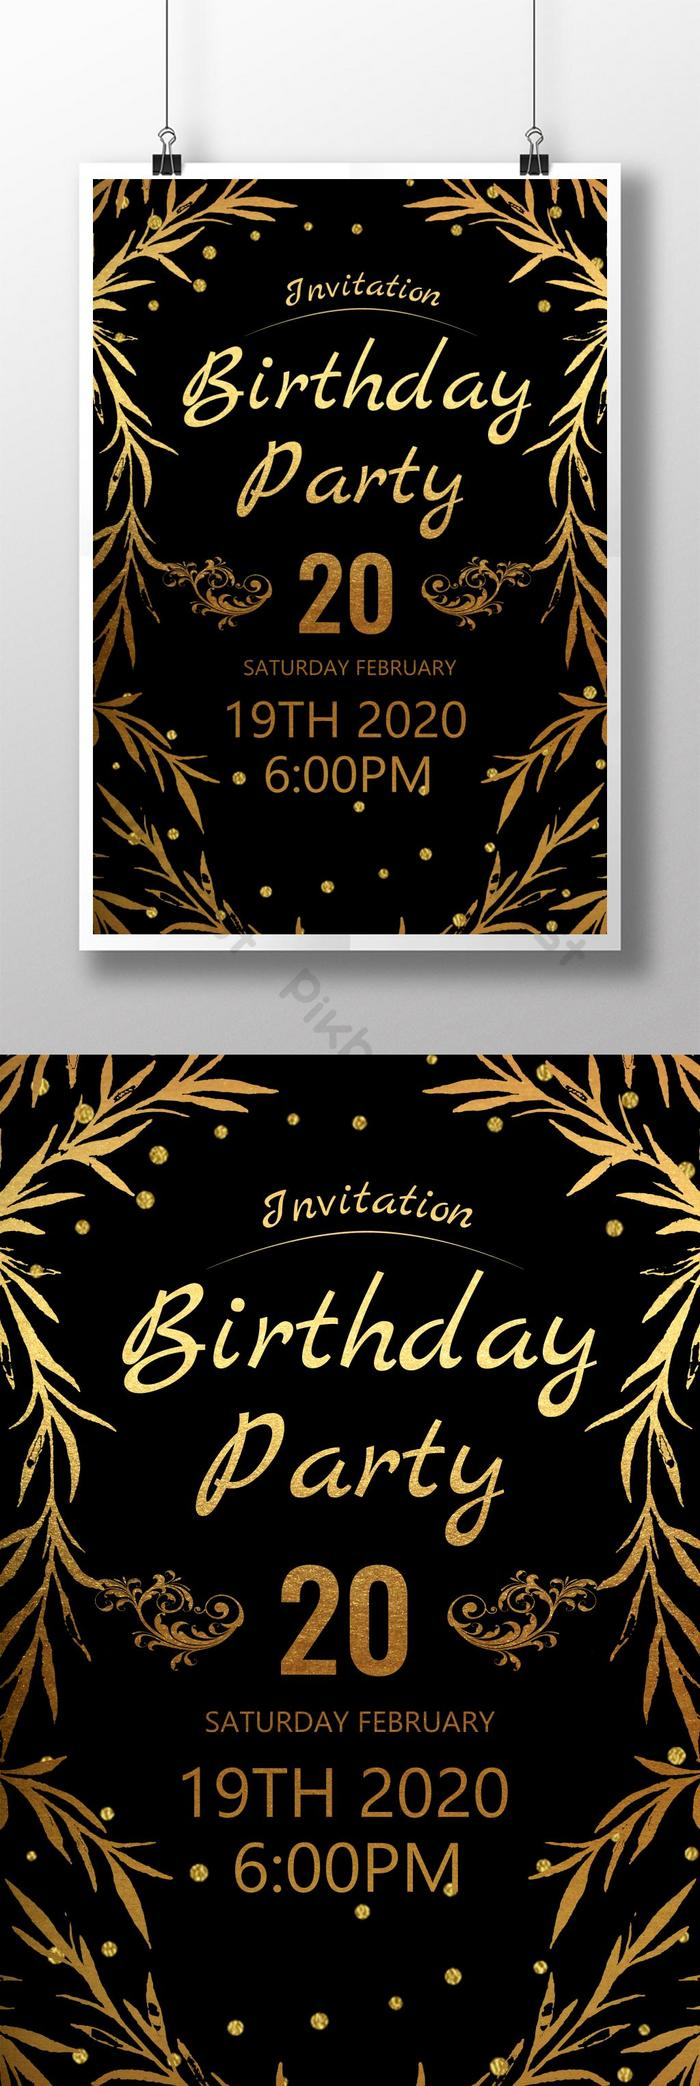 Black Gold Birthday Party Invitation   PSD Free Download - Pikbest